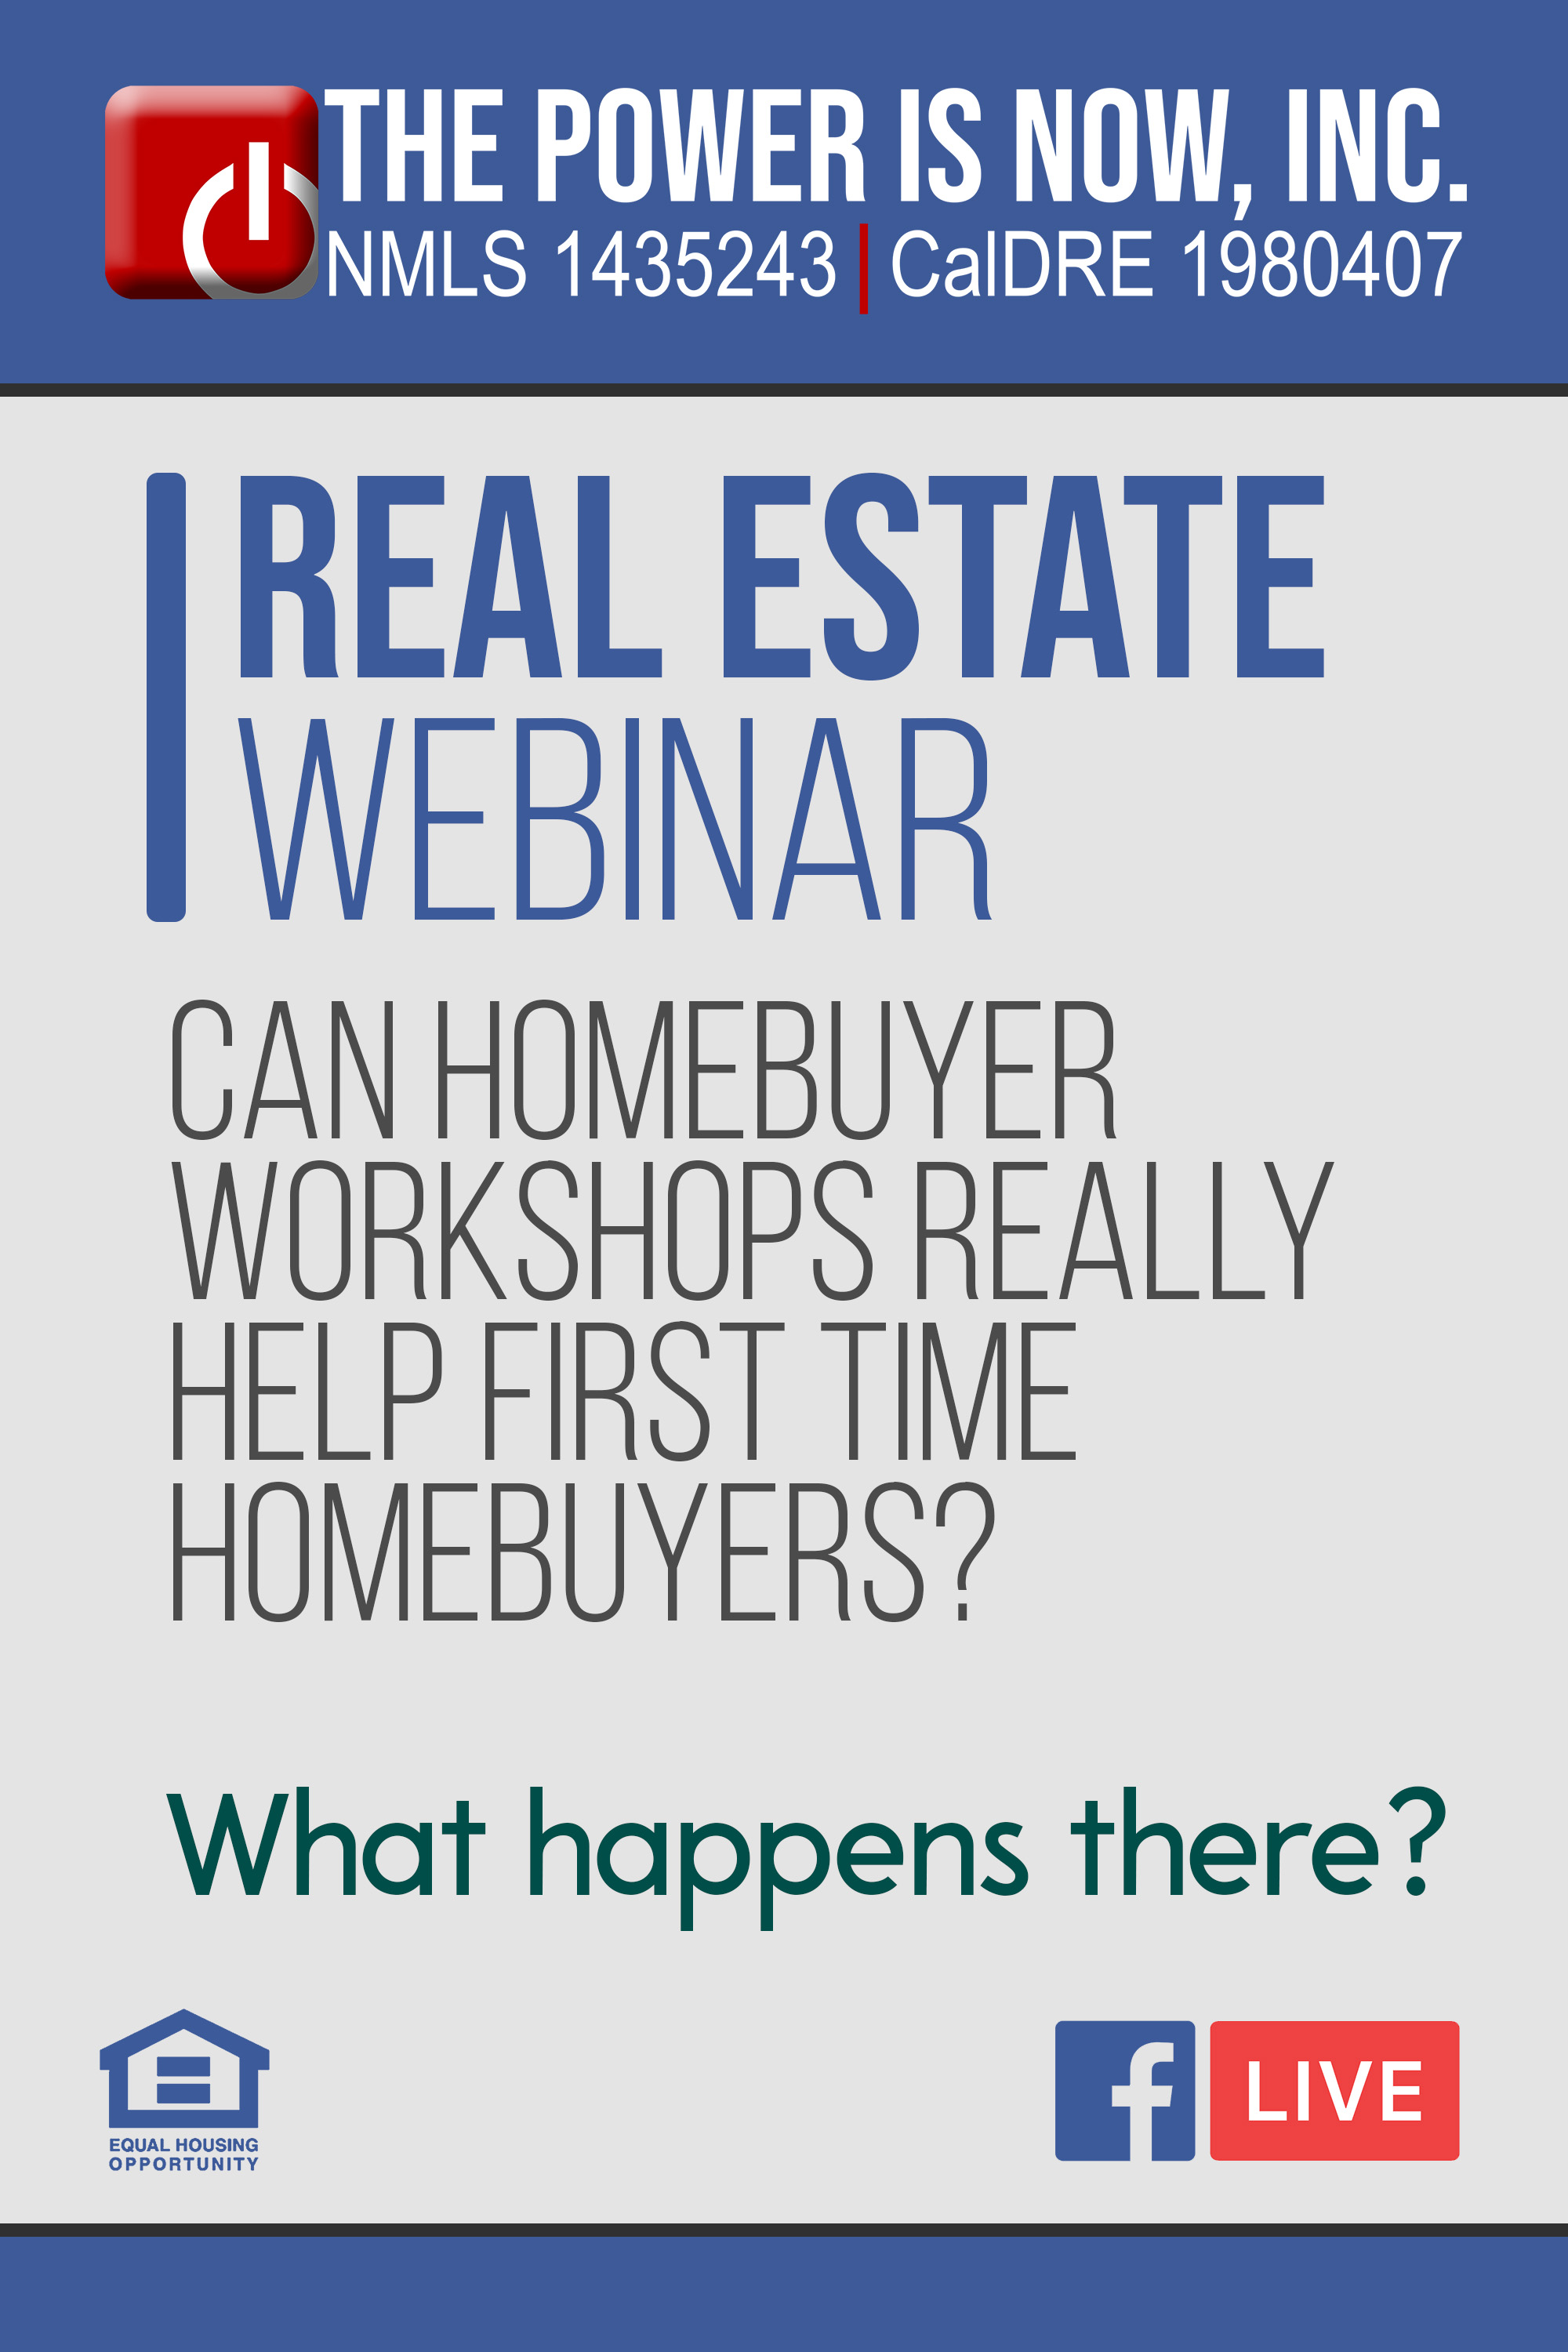 Can Homebuyer Workshops Really Help First Time Homebuyers?  | What happens there?